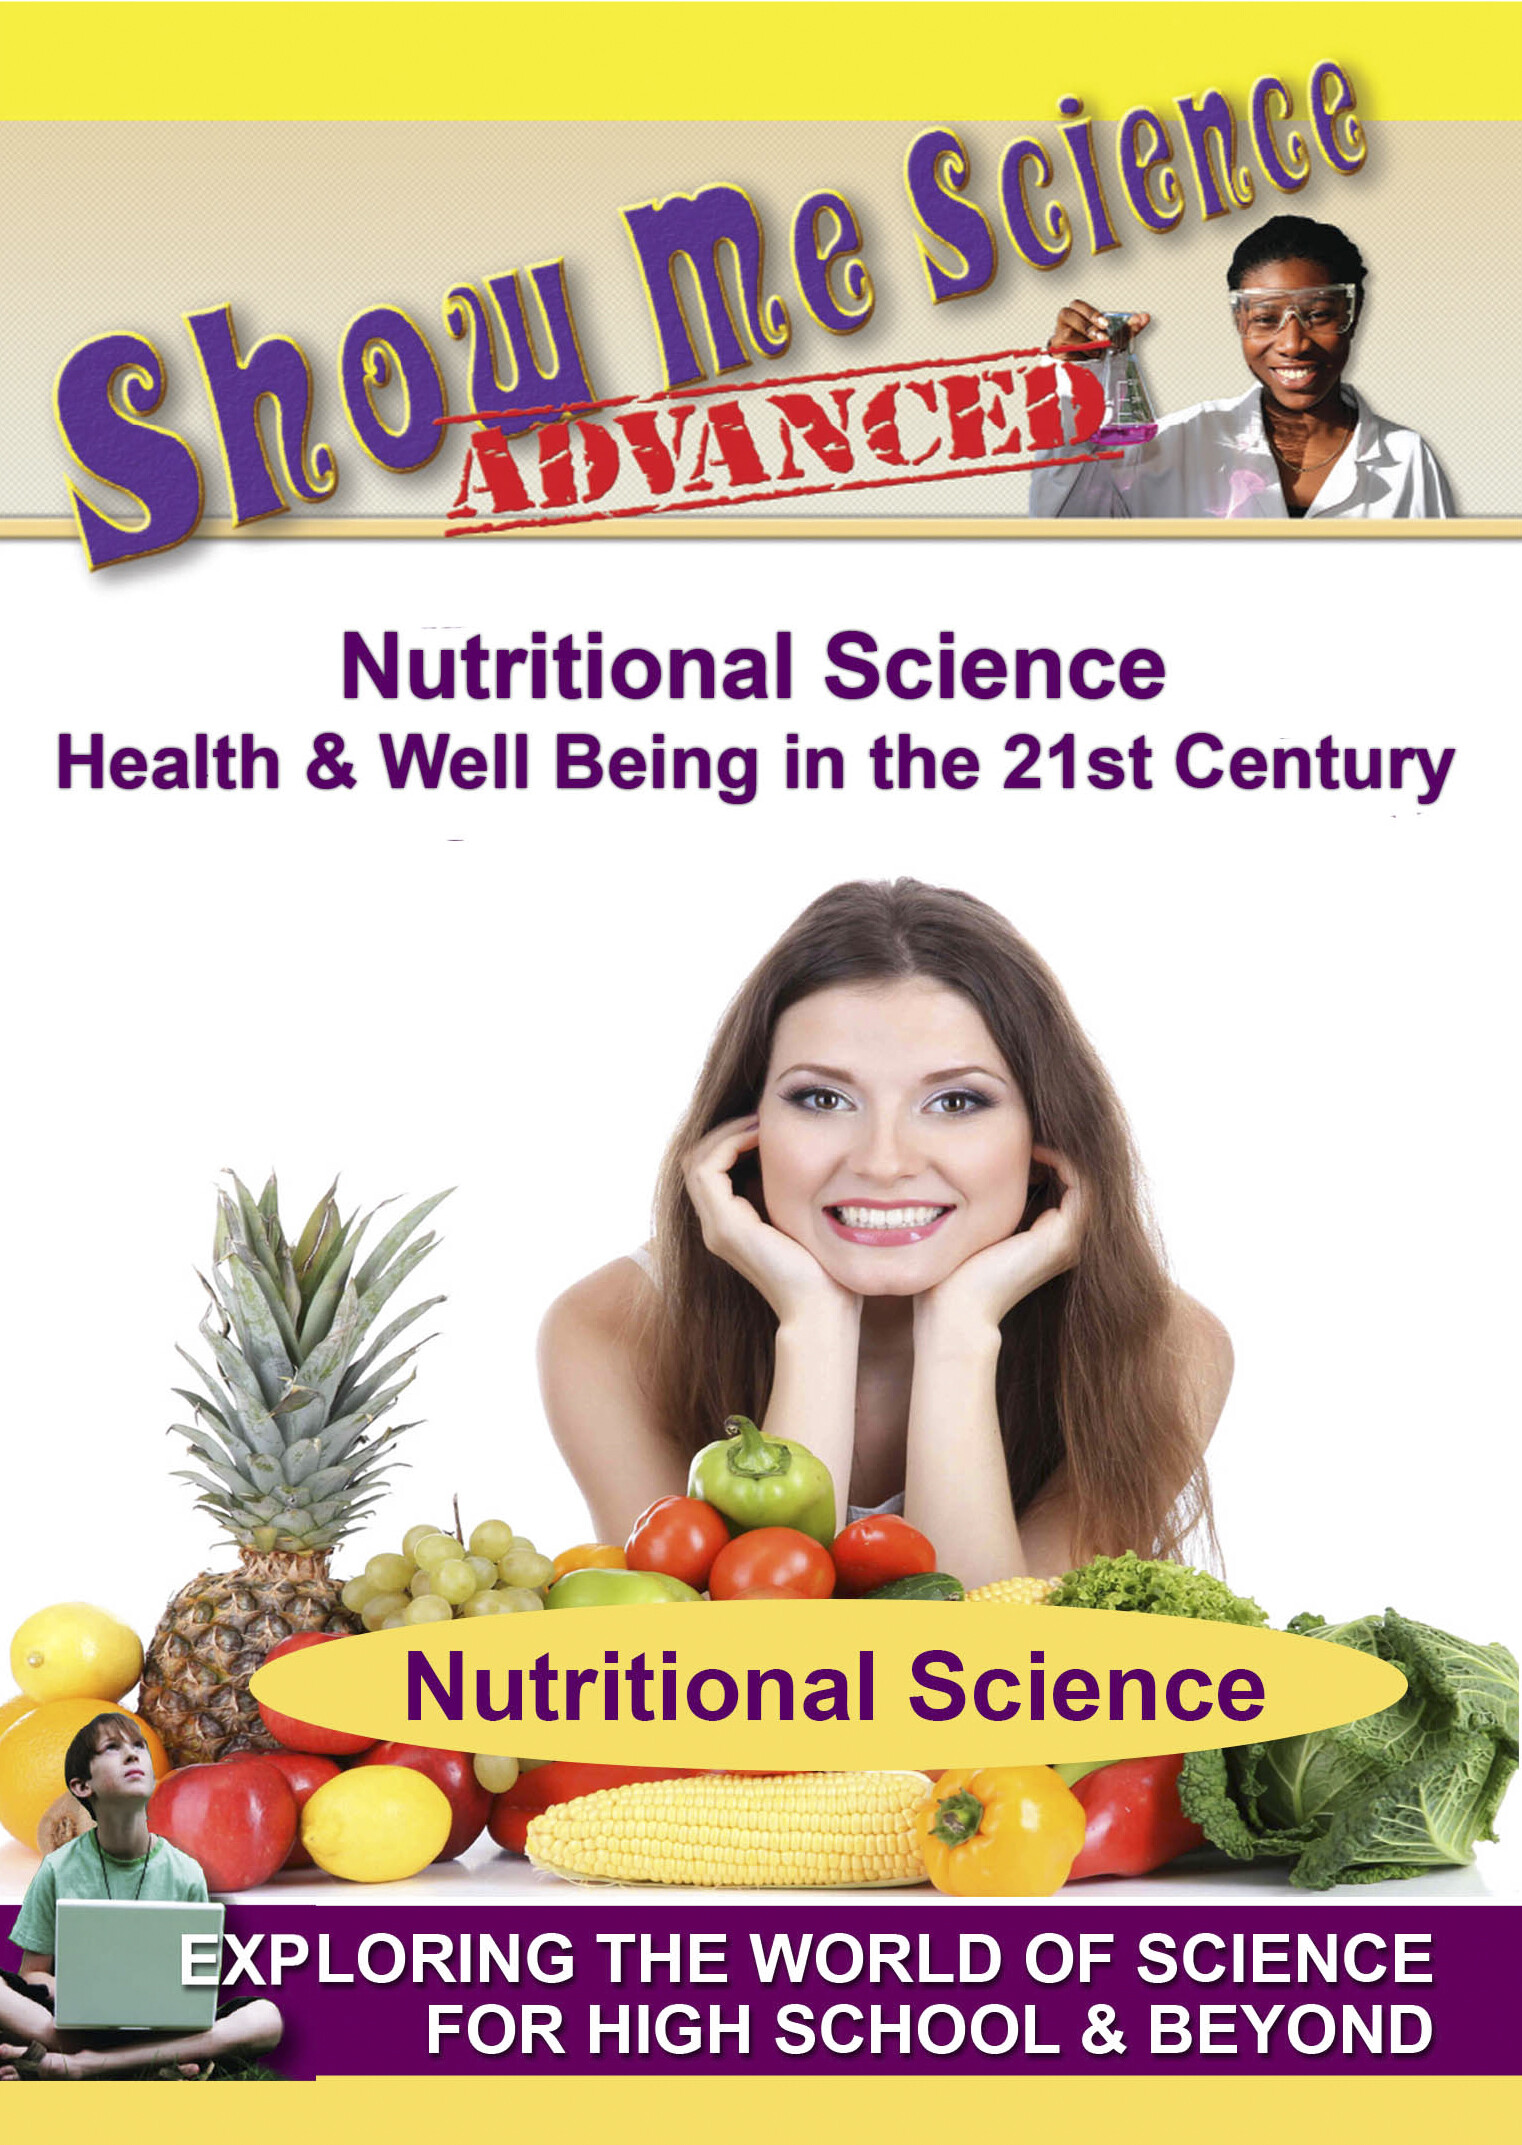 K4687 - Nutritional Science Health & Well Being in the 21st Century